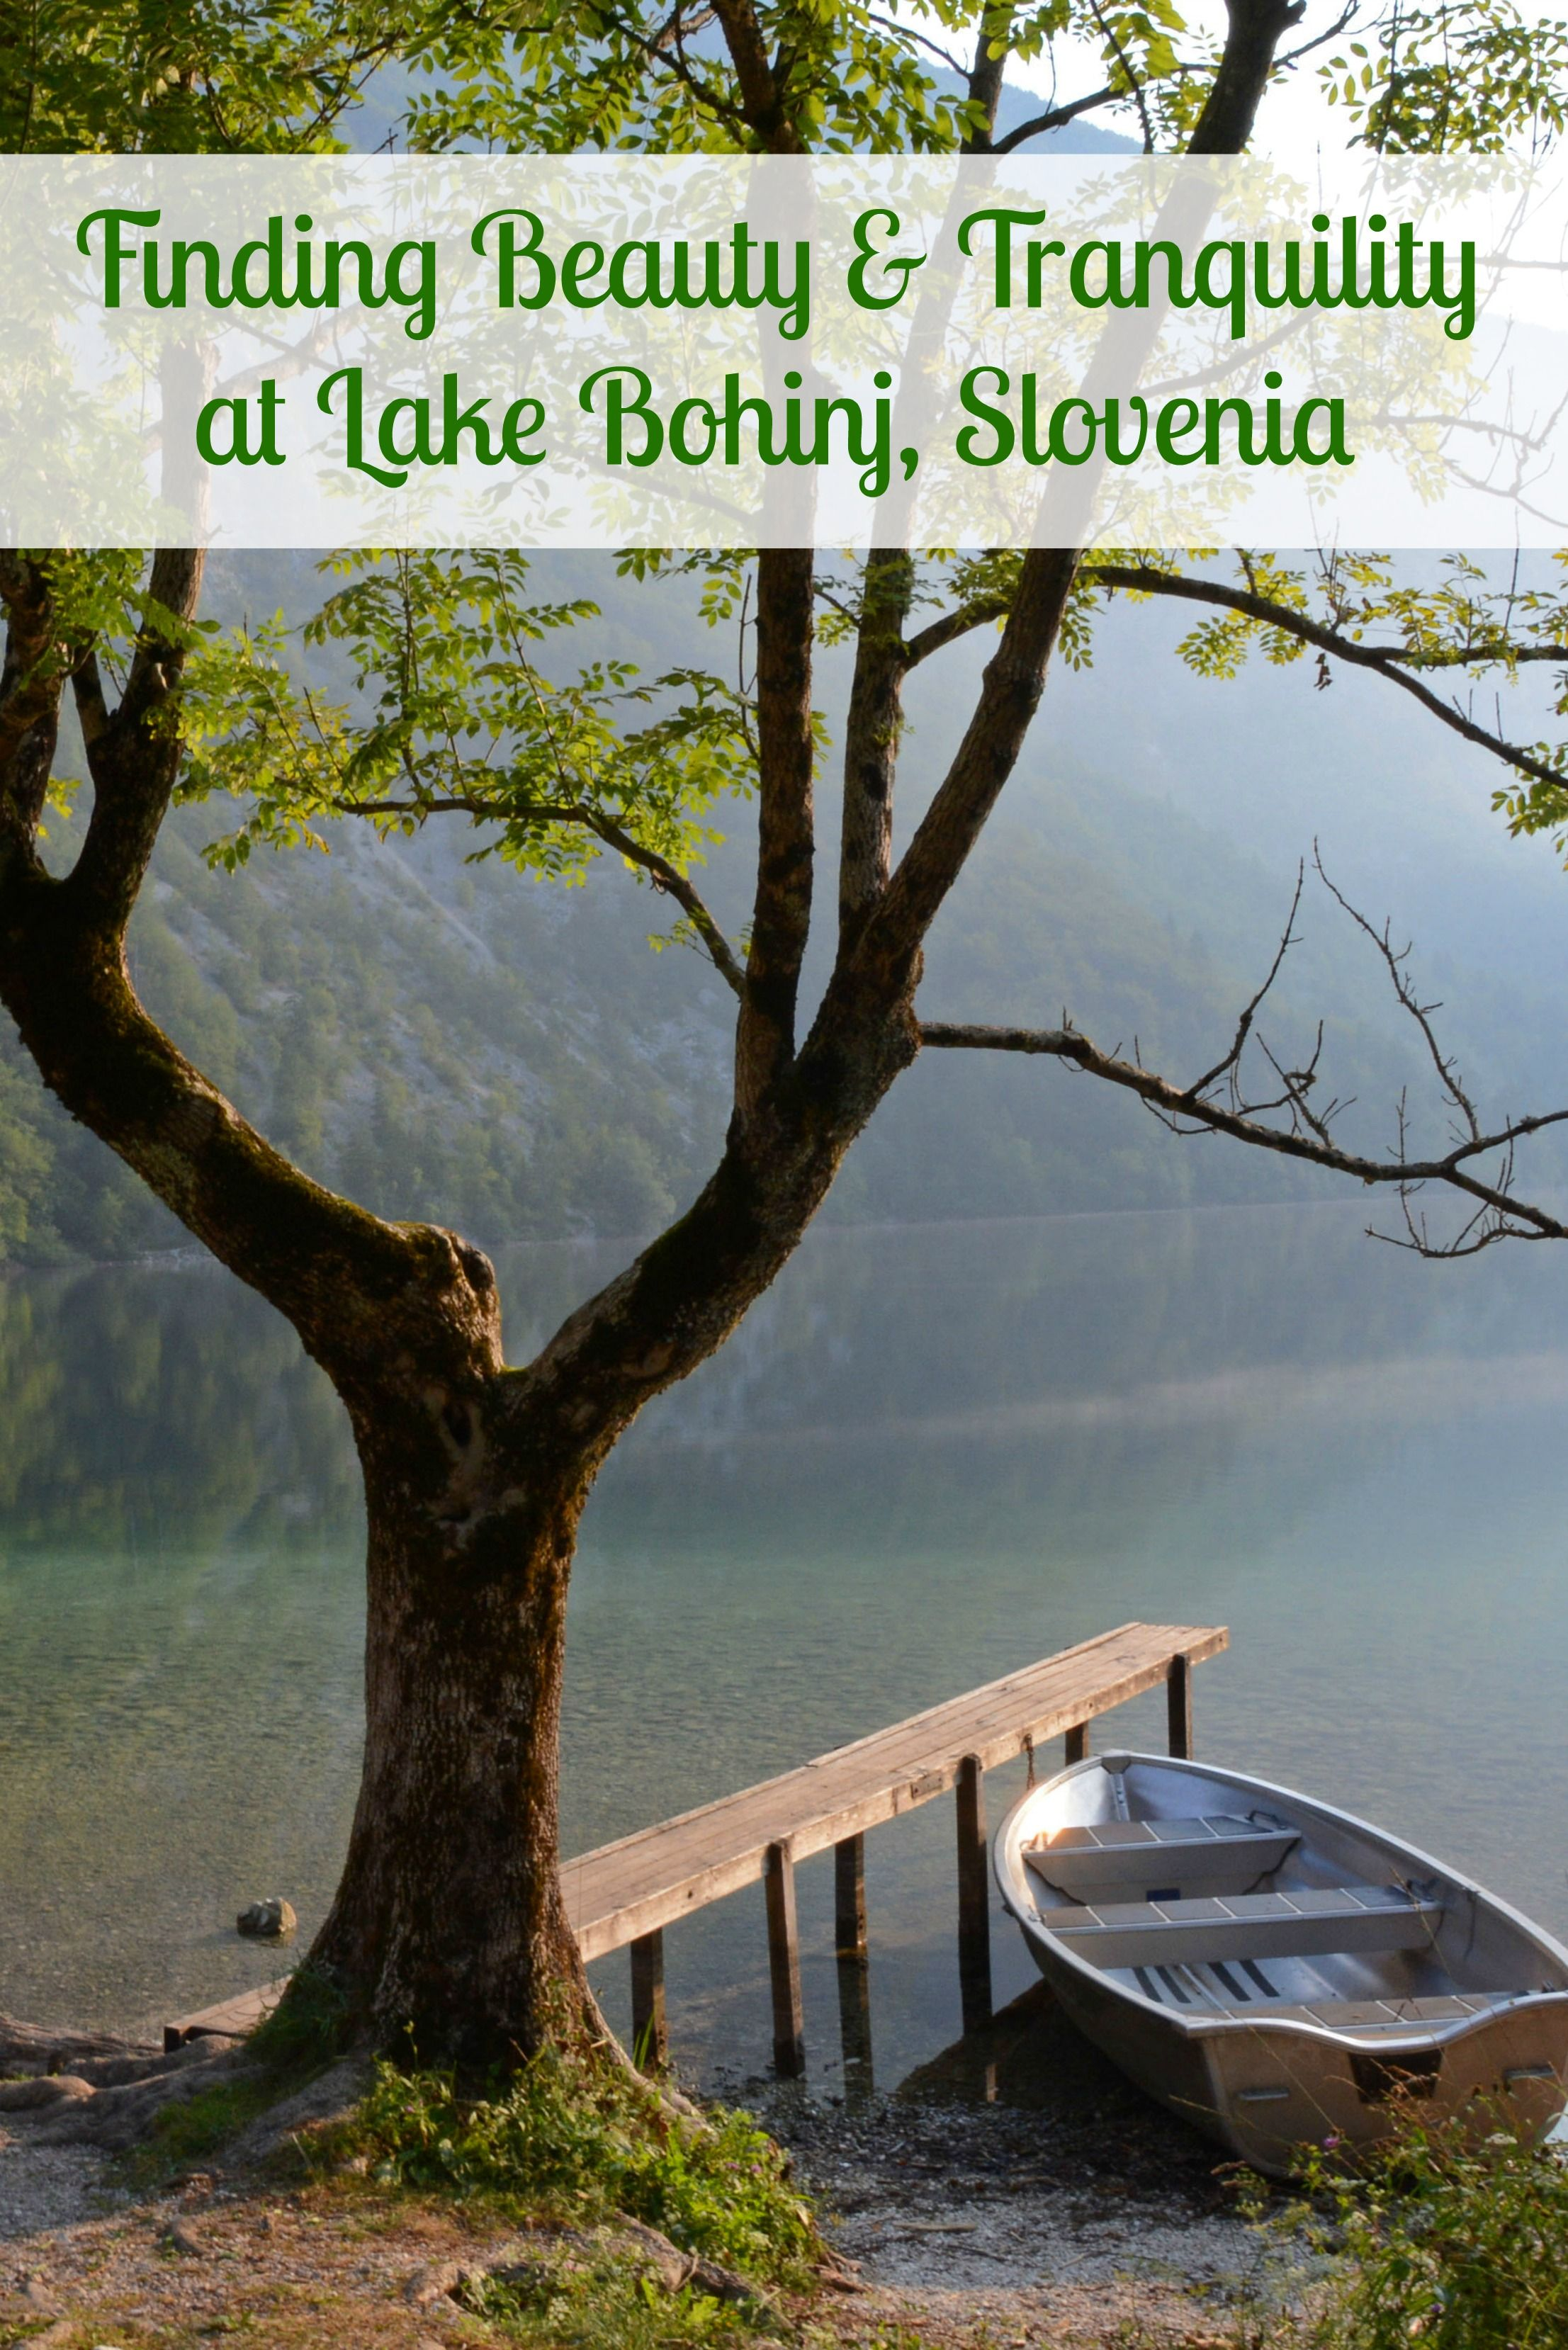 Find beauty tranquility at lake bohinj forget someday lake find beauty tranquility at lake bohinj forget someday ccuart Image collections